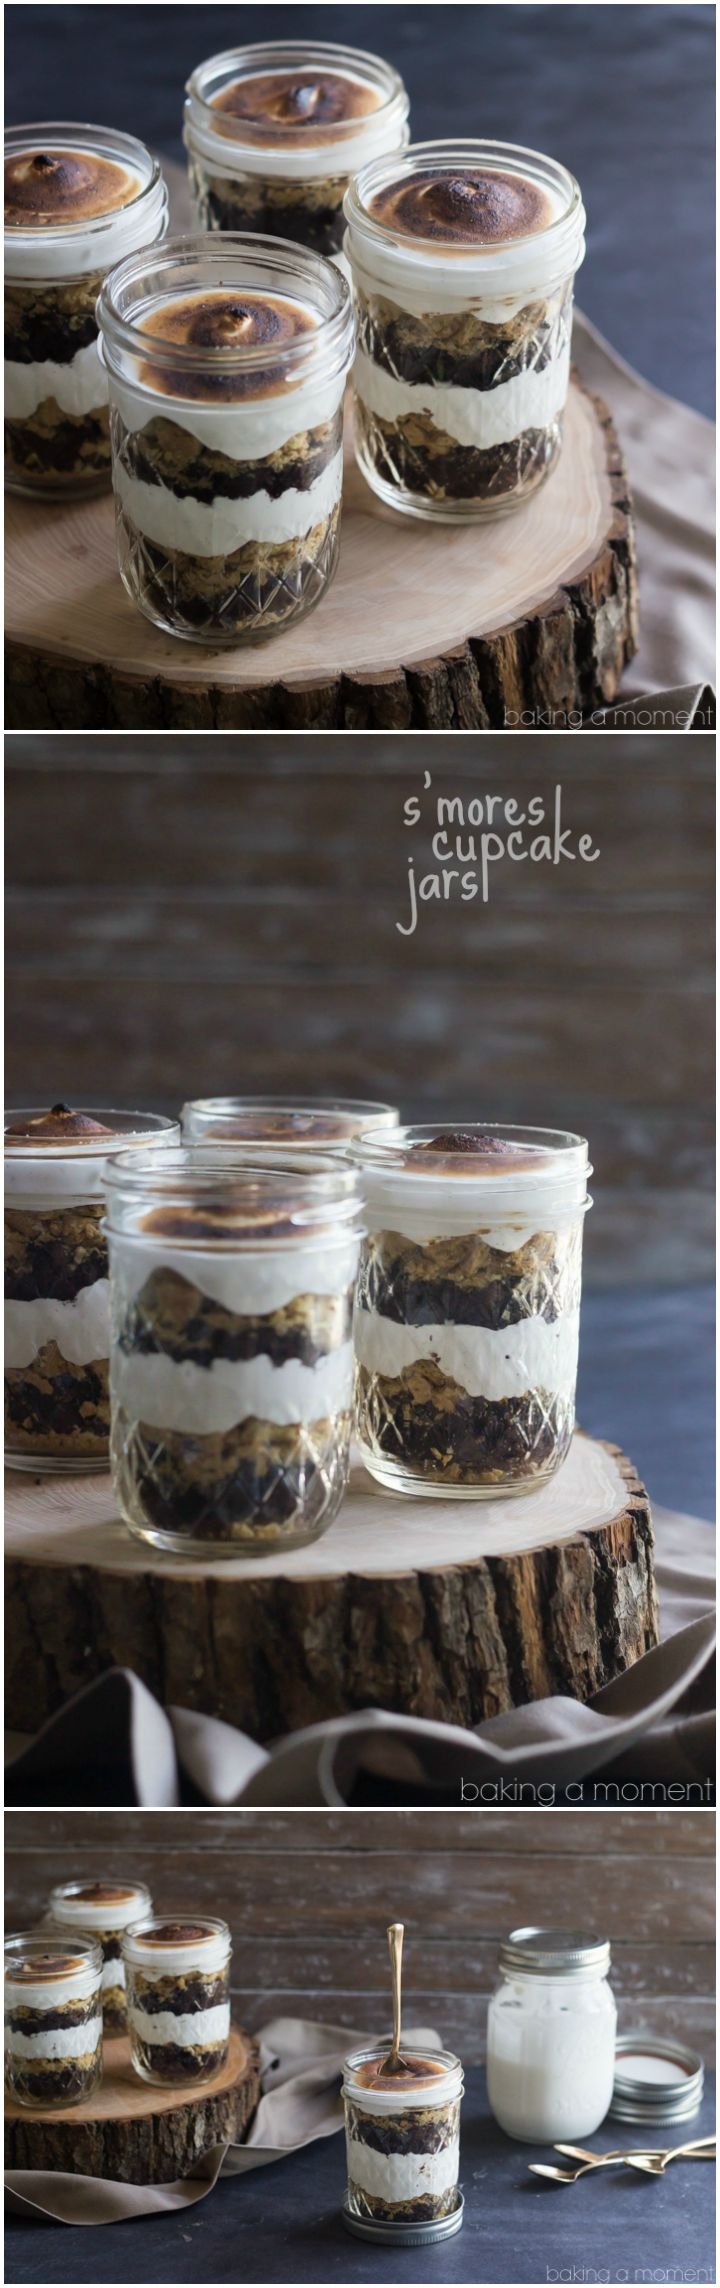 Perfect for a barbecue or potluck! These S'mores Cupcake Jars transport easily and they are TO DIE FOR! Soft and sweet, with just the right amount of crunch. They'll be the hit of the party! ~ http://bakingamoment.com